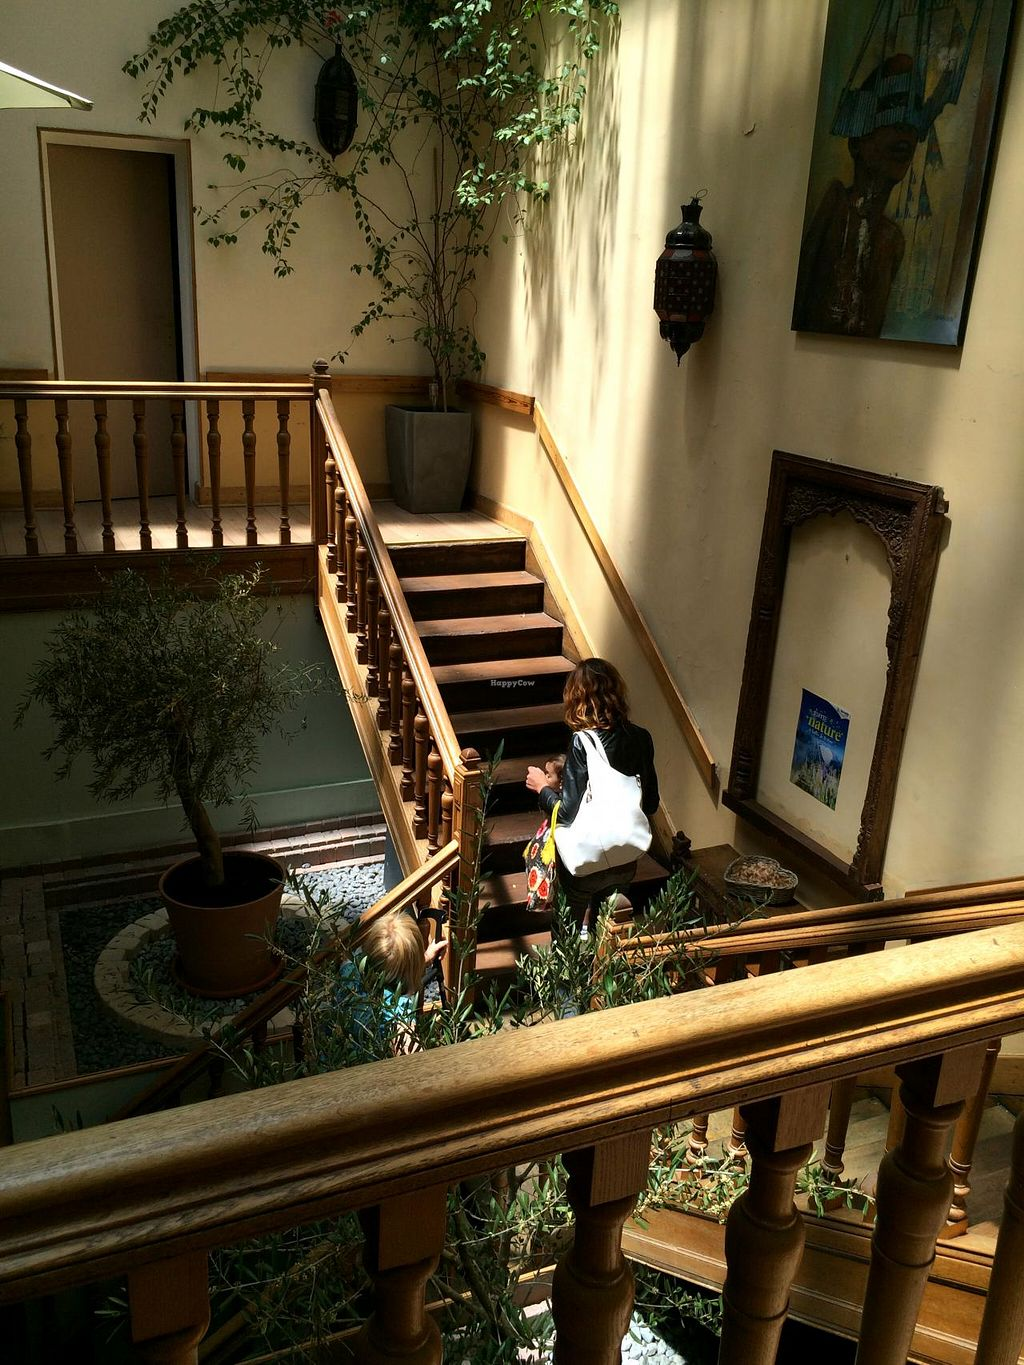 """Photo of CLOSED: Country Life  by <a href=""""/members/profile/LisaCupcake"""">LisaCupcake</a> <br/>Stairs going to the restaurant on the upper level <br/> June 26, 2015  - <a href='/contact/abuse/image/858/107336'>Report</a>"""